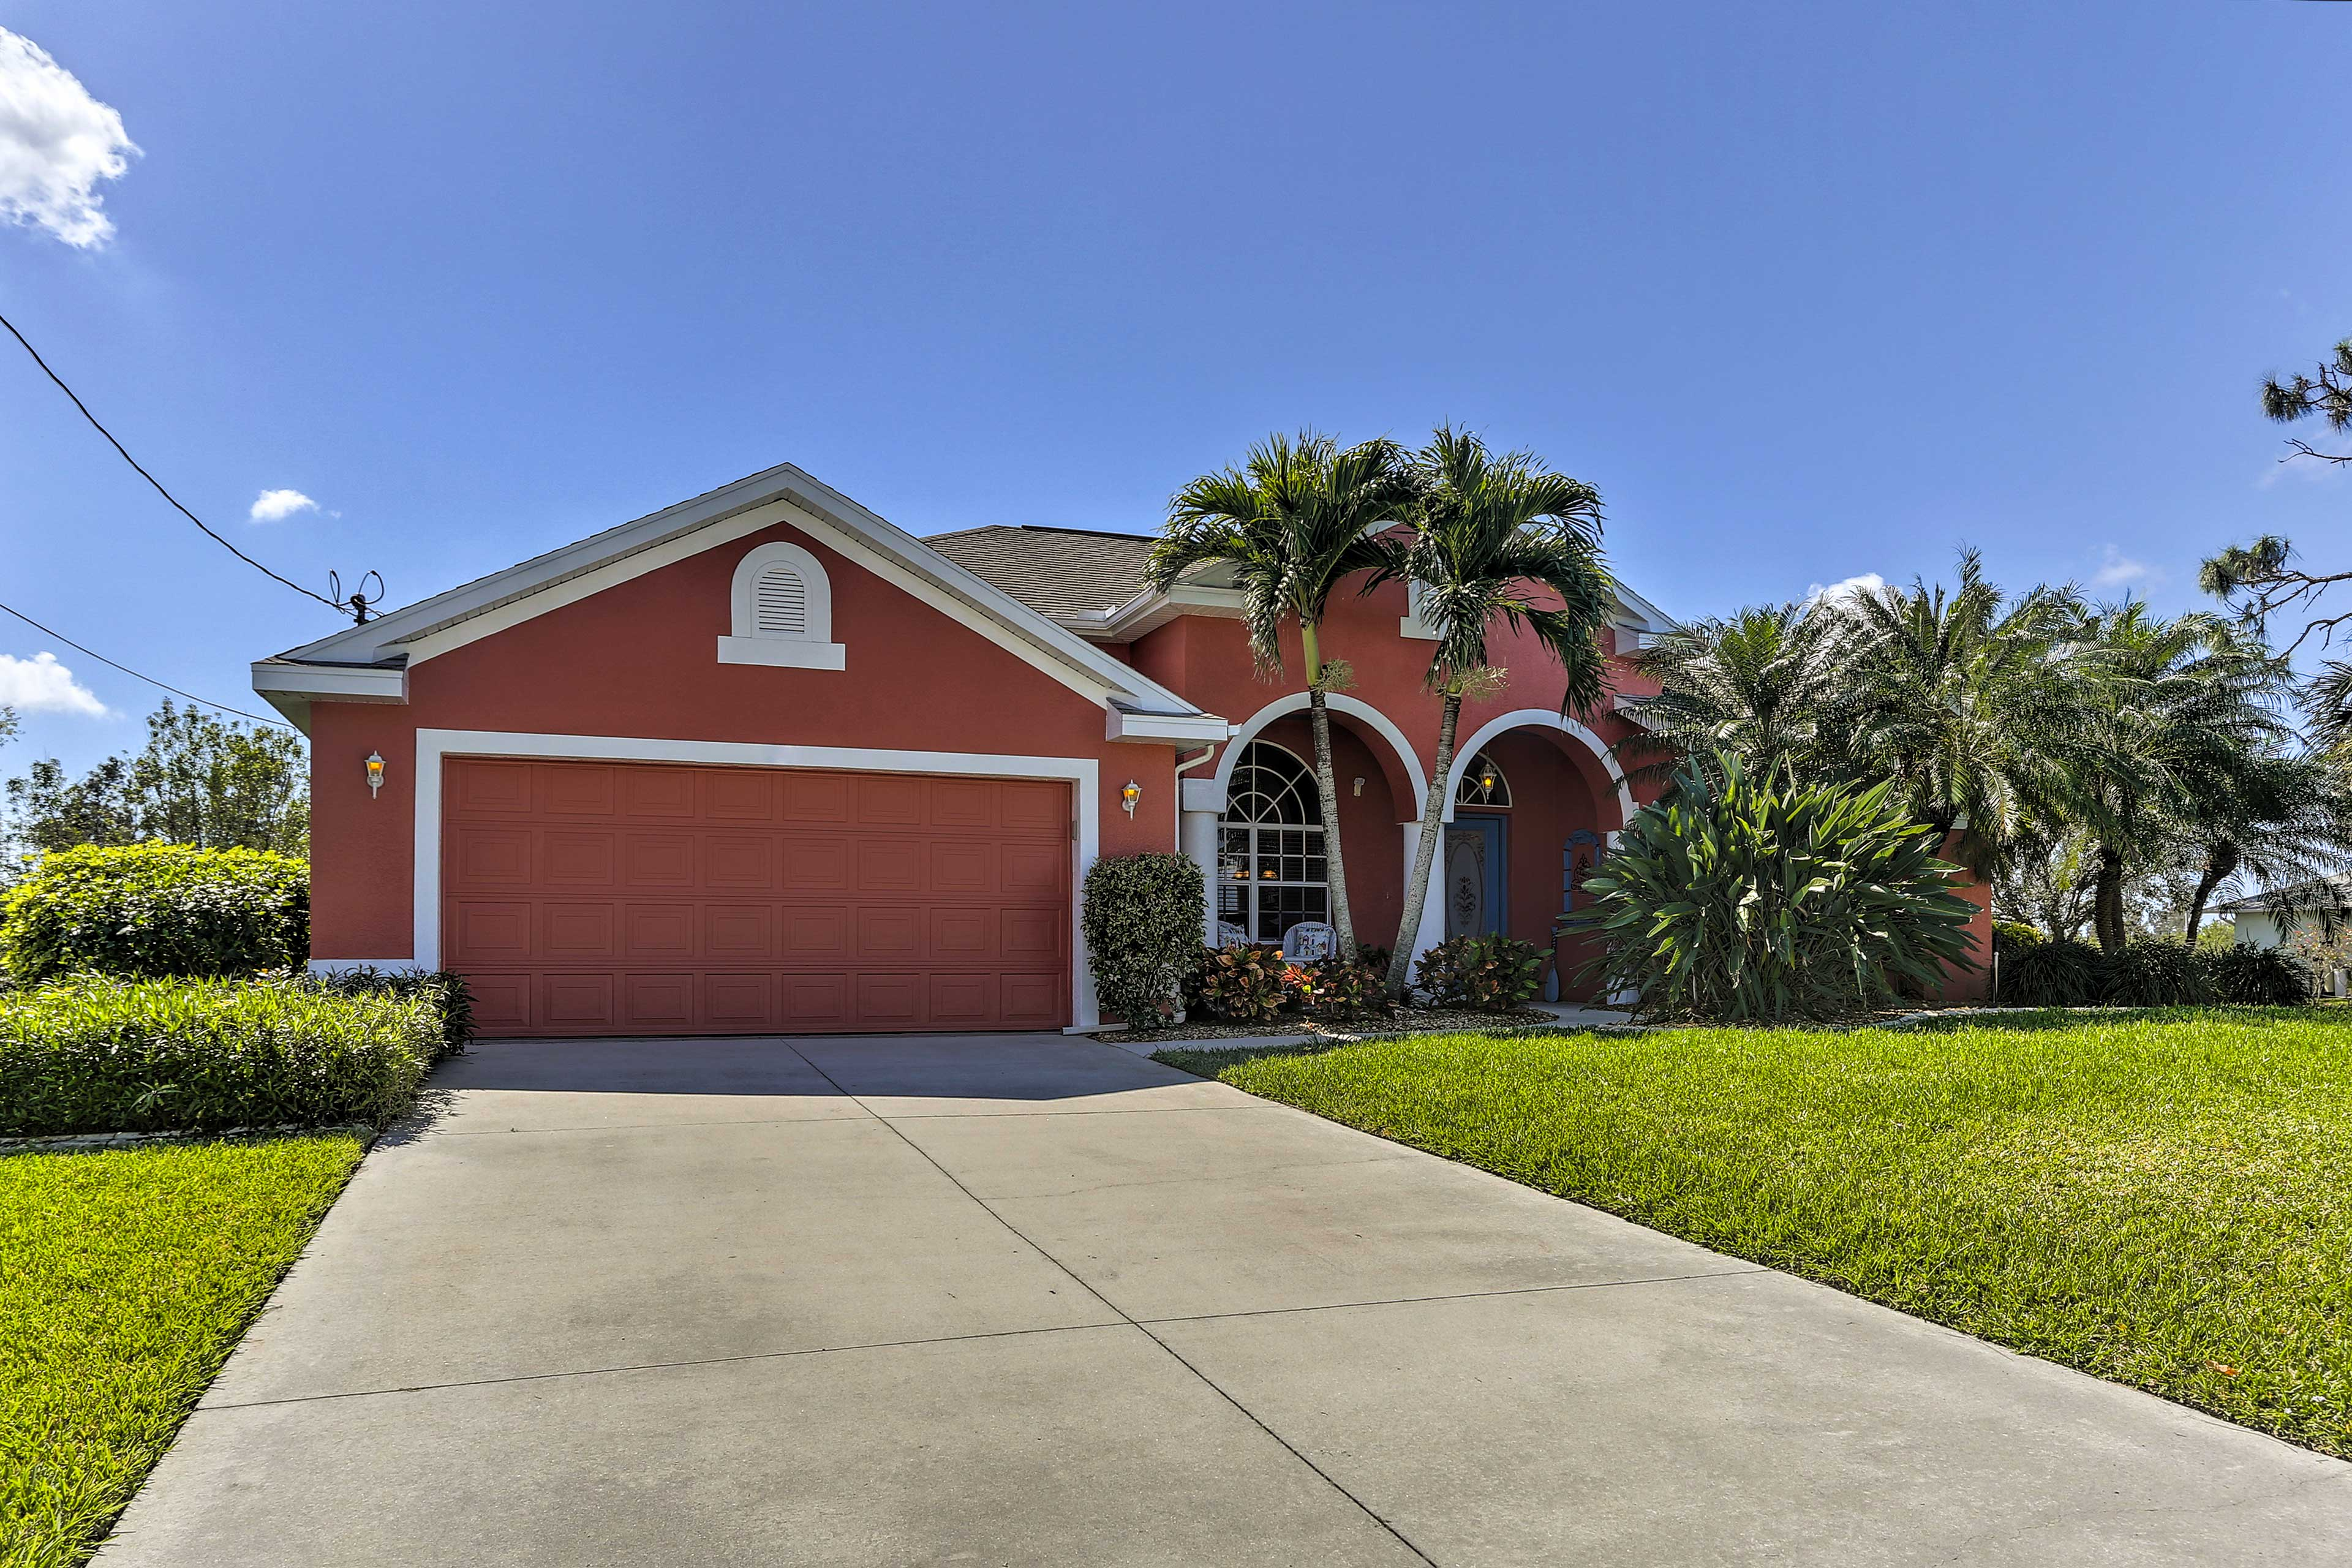 Cape Coral Vacation Rental | 3BR | 2BA | 2,100 Sq Ft | Single-Story Home